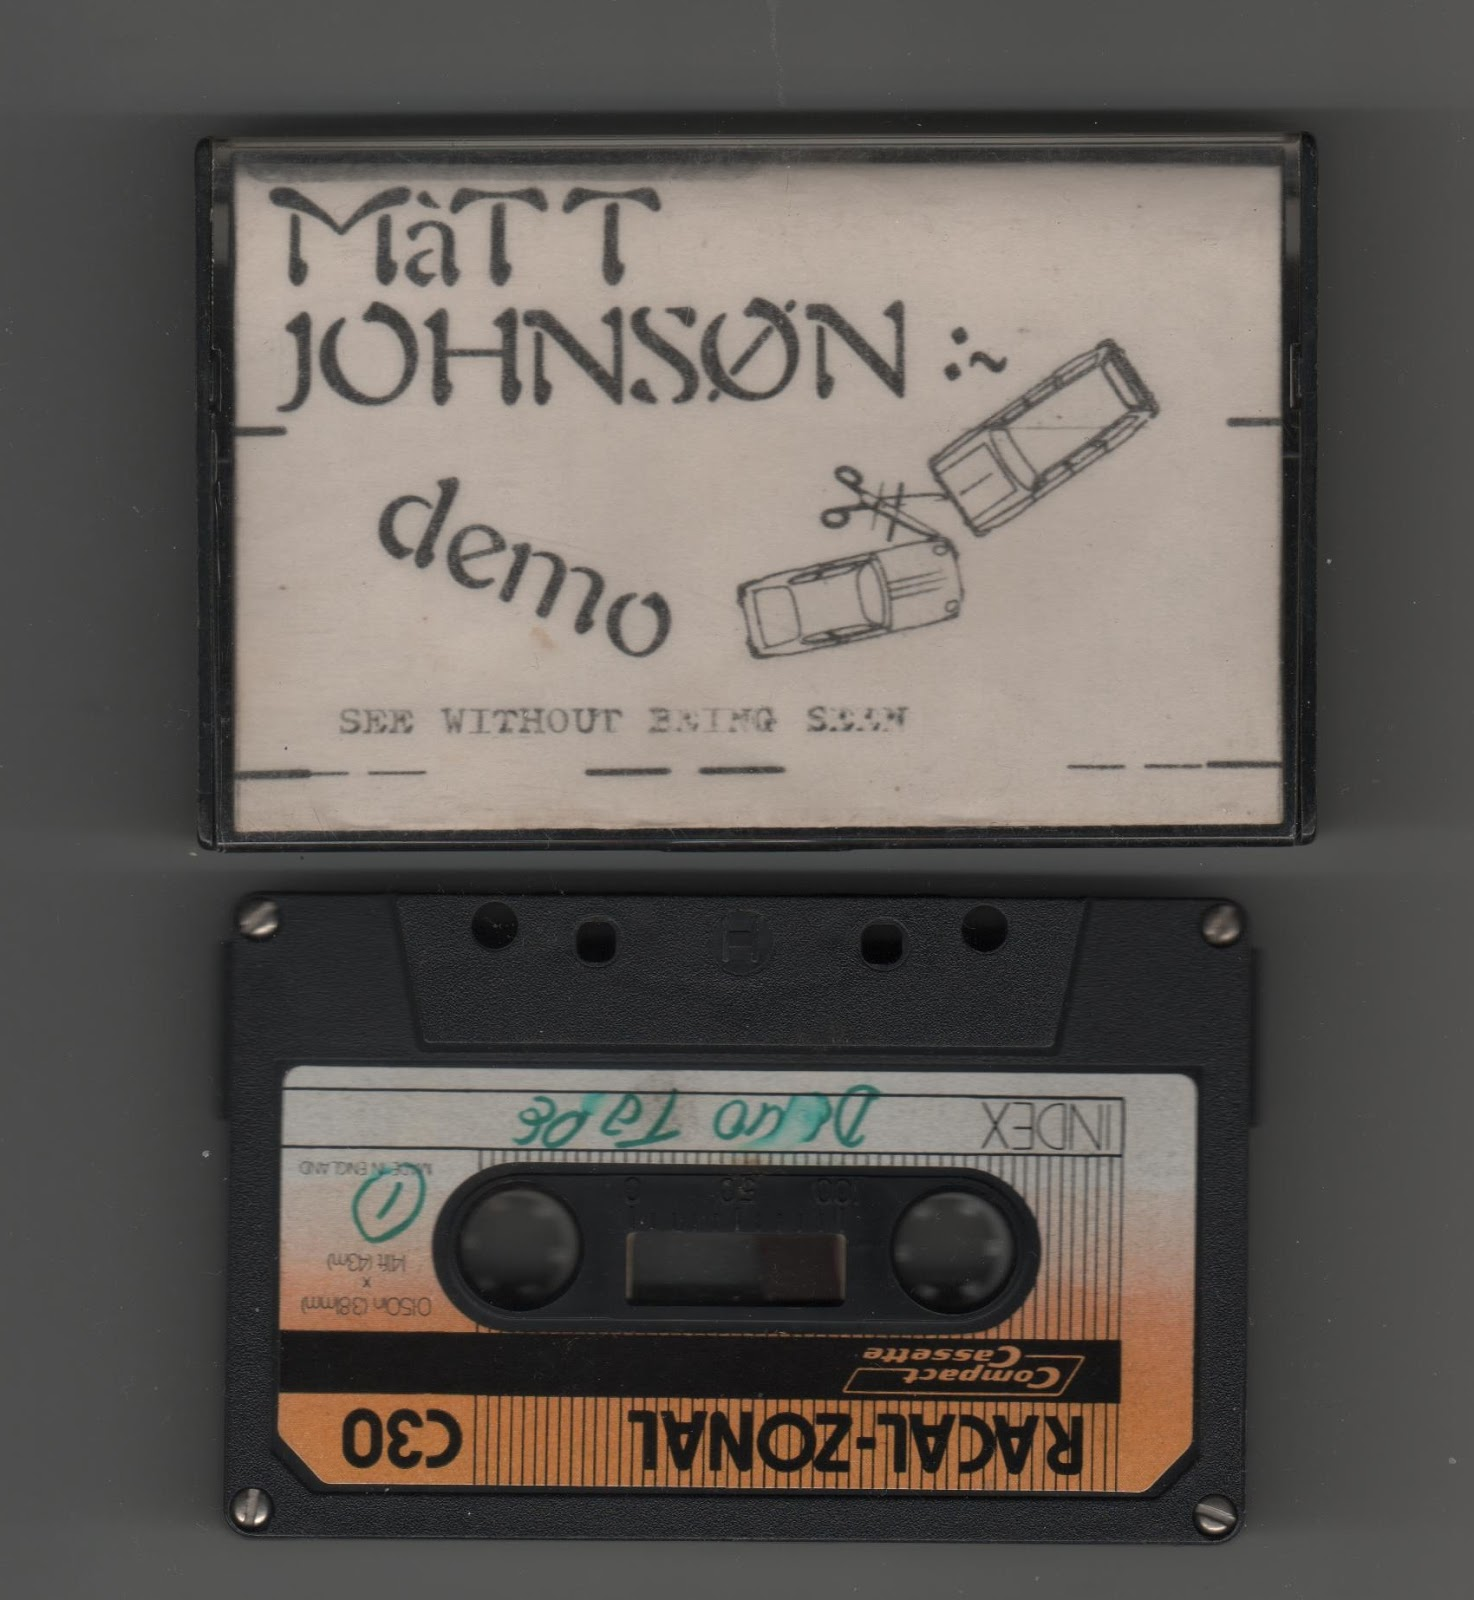 Matt Johnson - See Without Being Seen